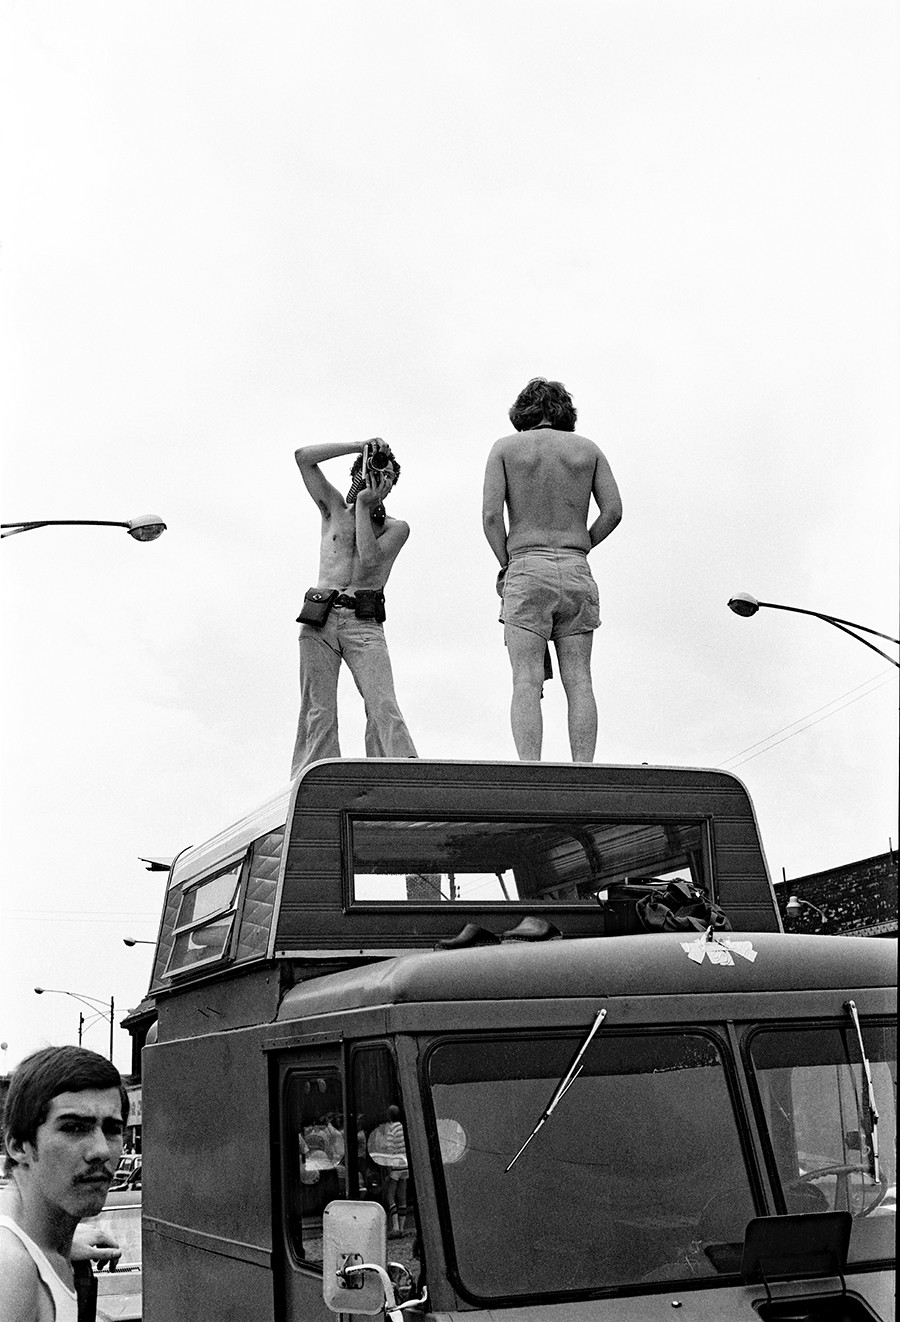 Documenting the Gay Pride Parade atop a makeshift shooting platform. - DIANE ALEXANDER WHITE